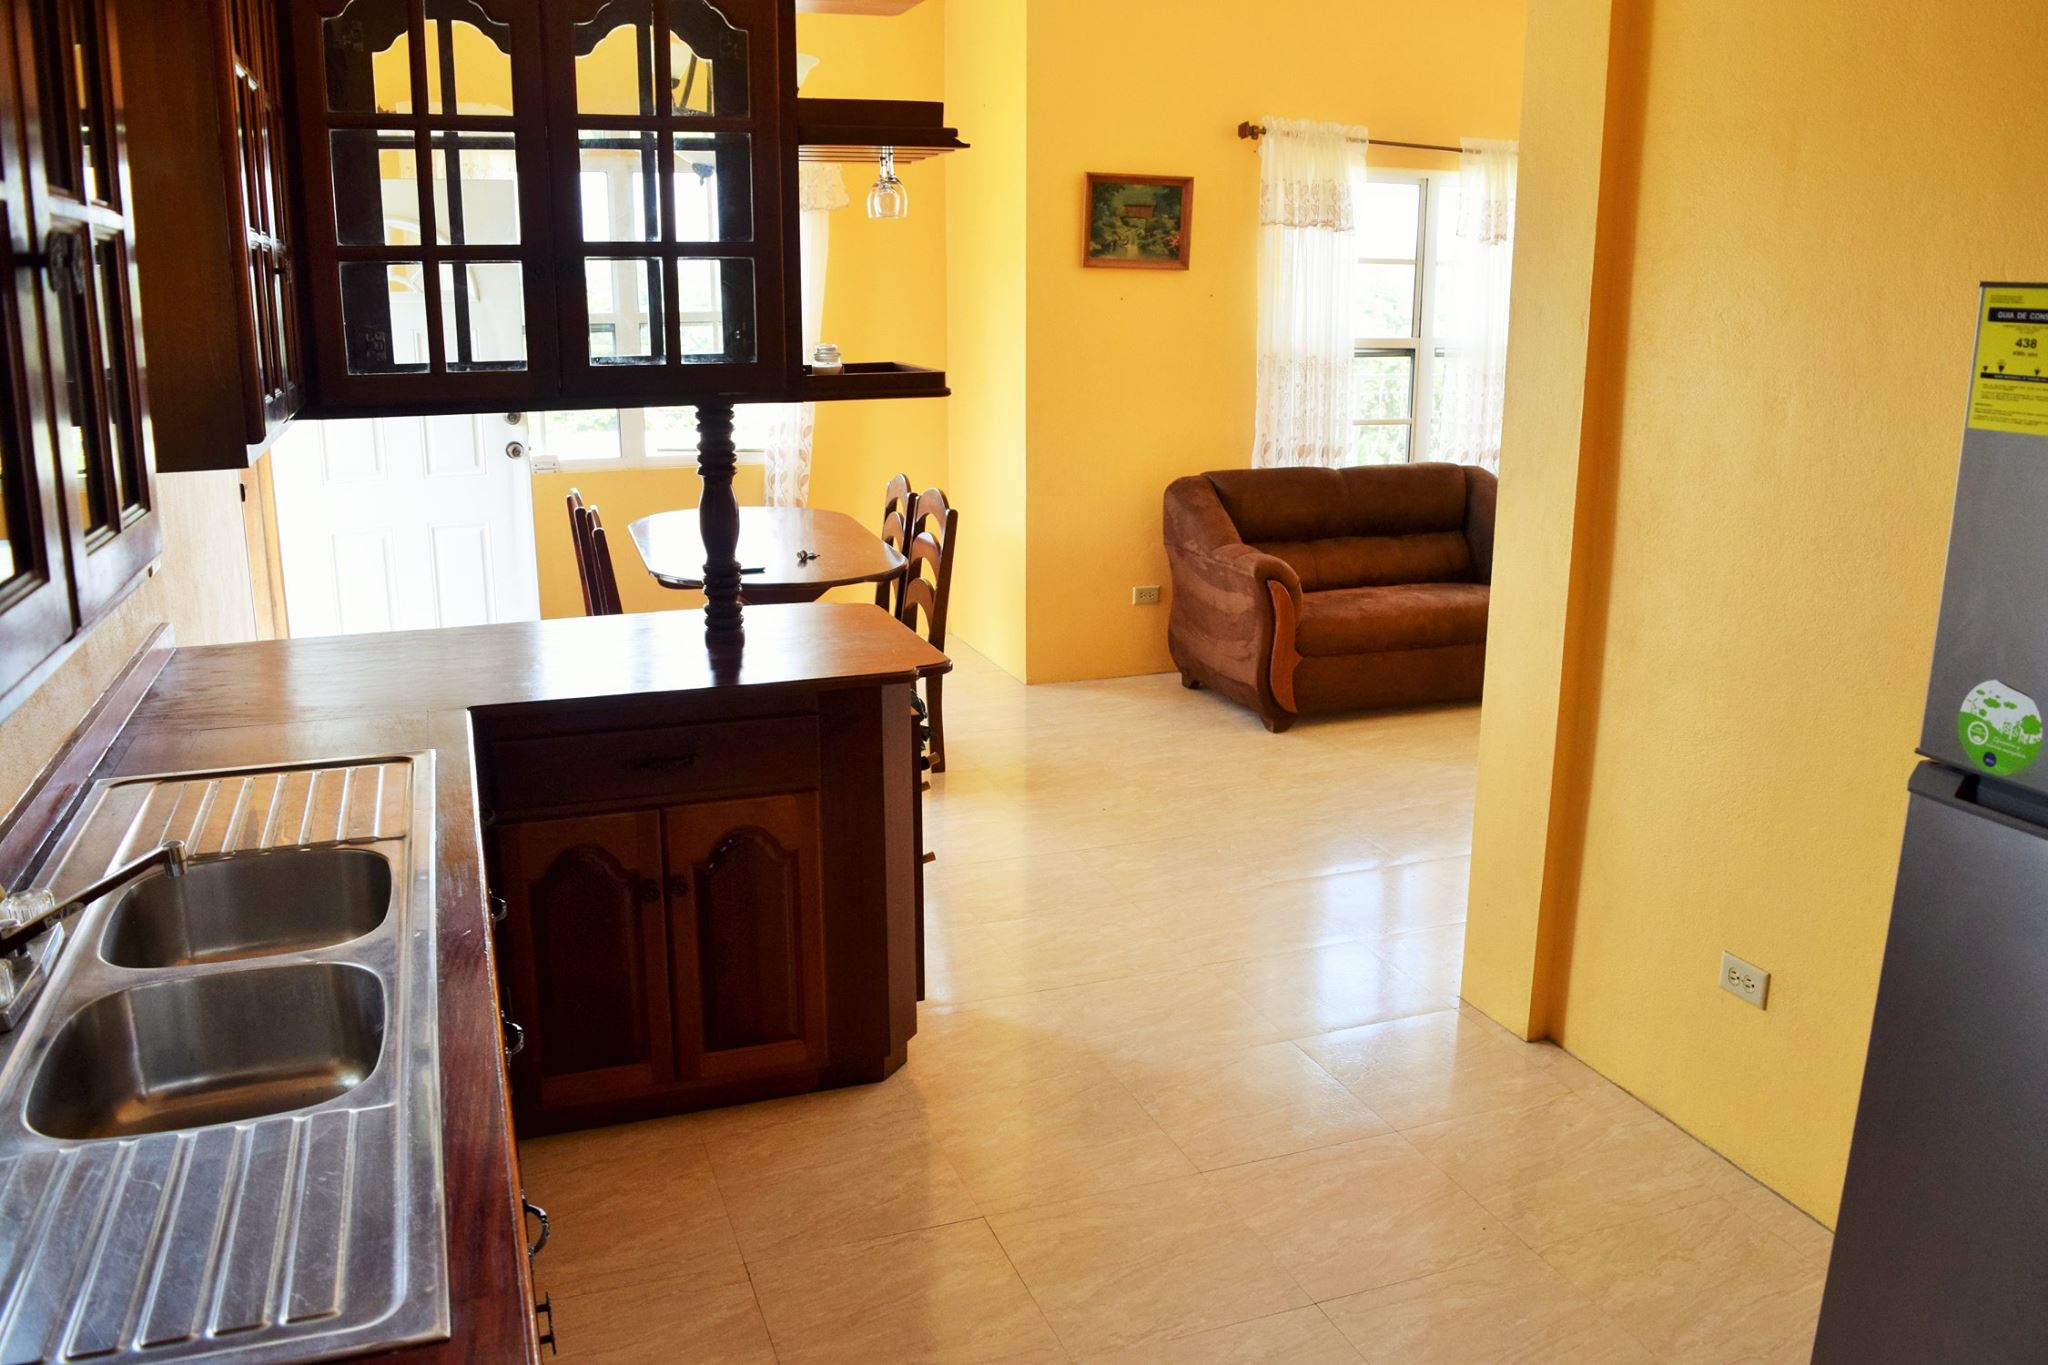 3 bedroom 1 bathroom apartment